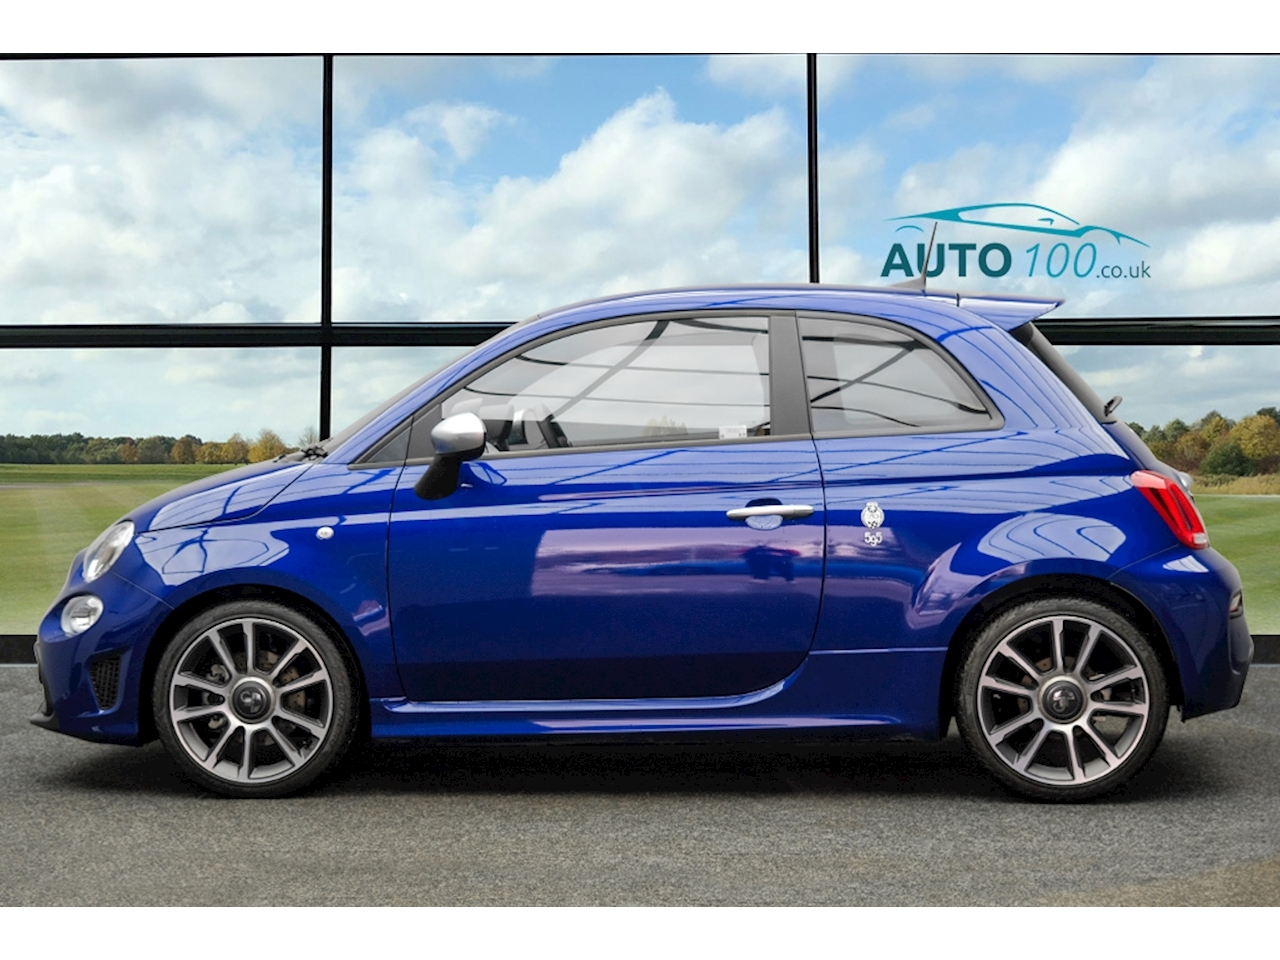 Abarth 1.4 T-Jet Turismo 70th Hatchback 3dr Petrol Manual (165 bhp)